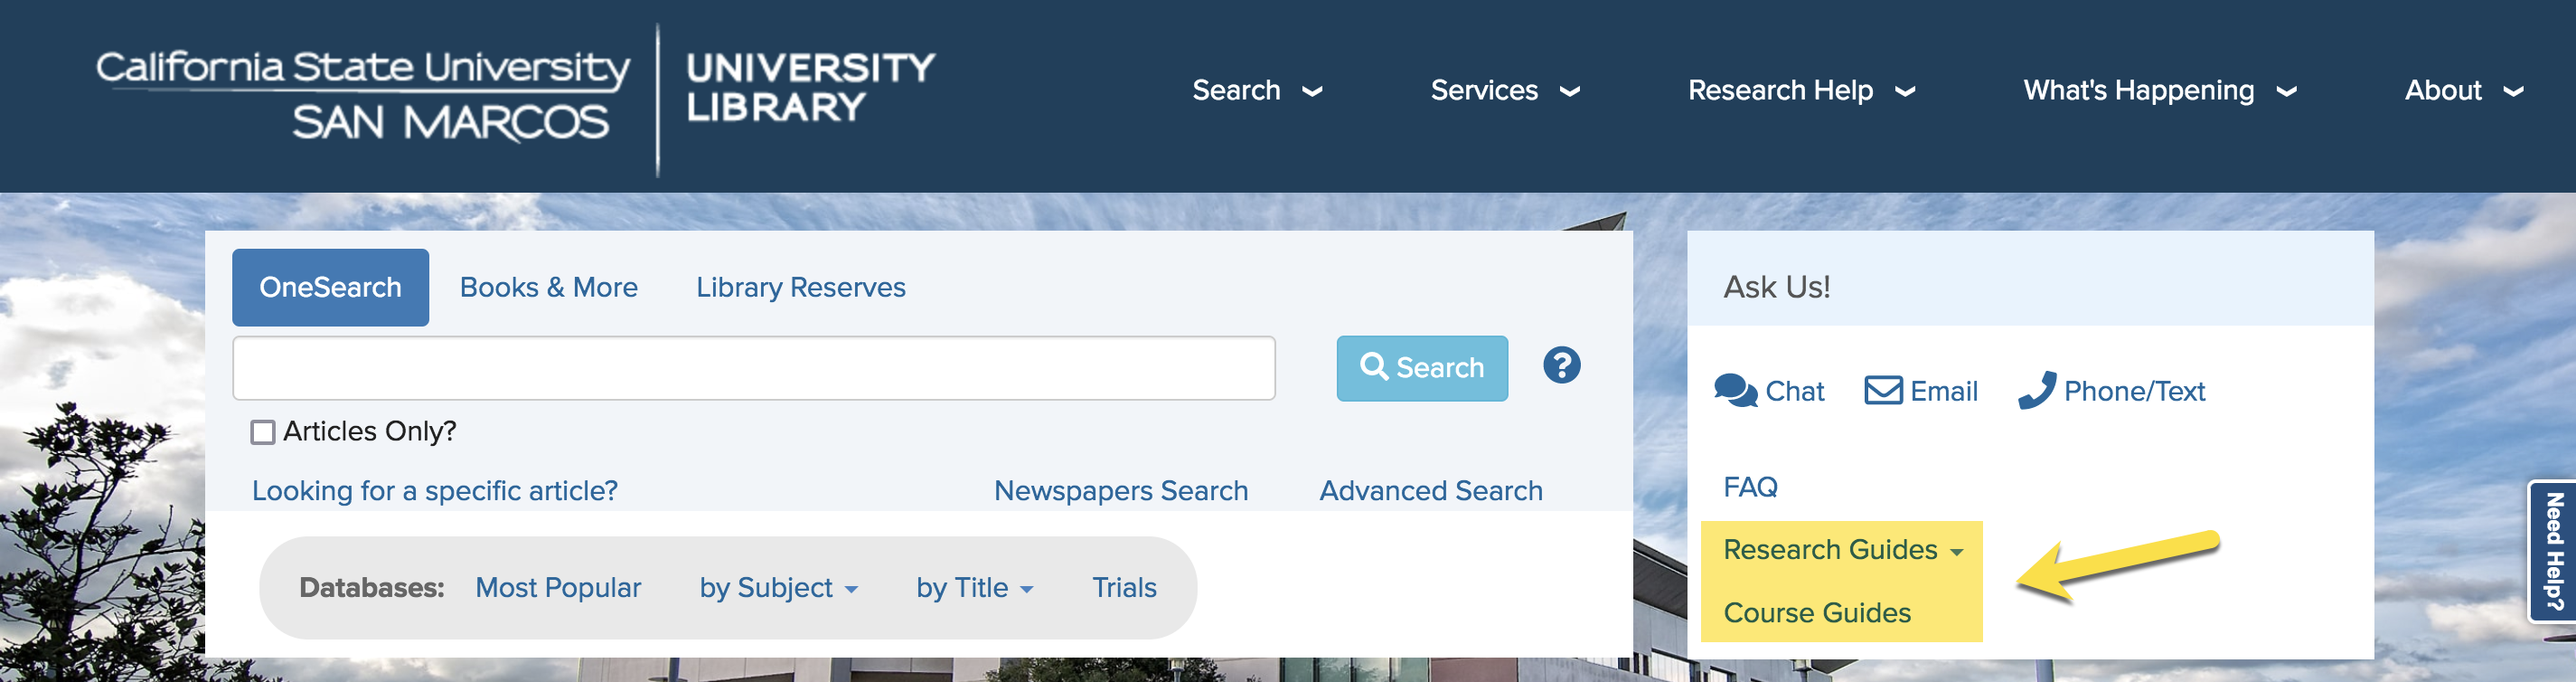 Library homepage with research guides and course guides highlighted